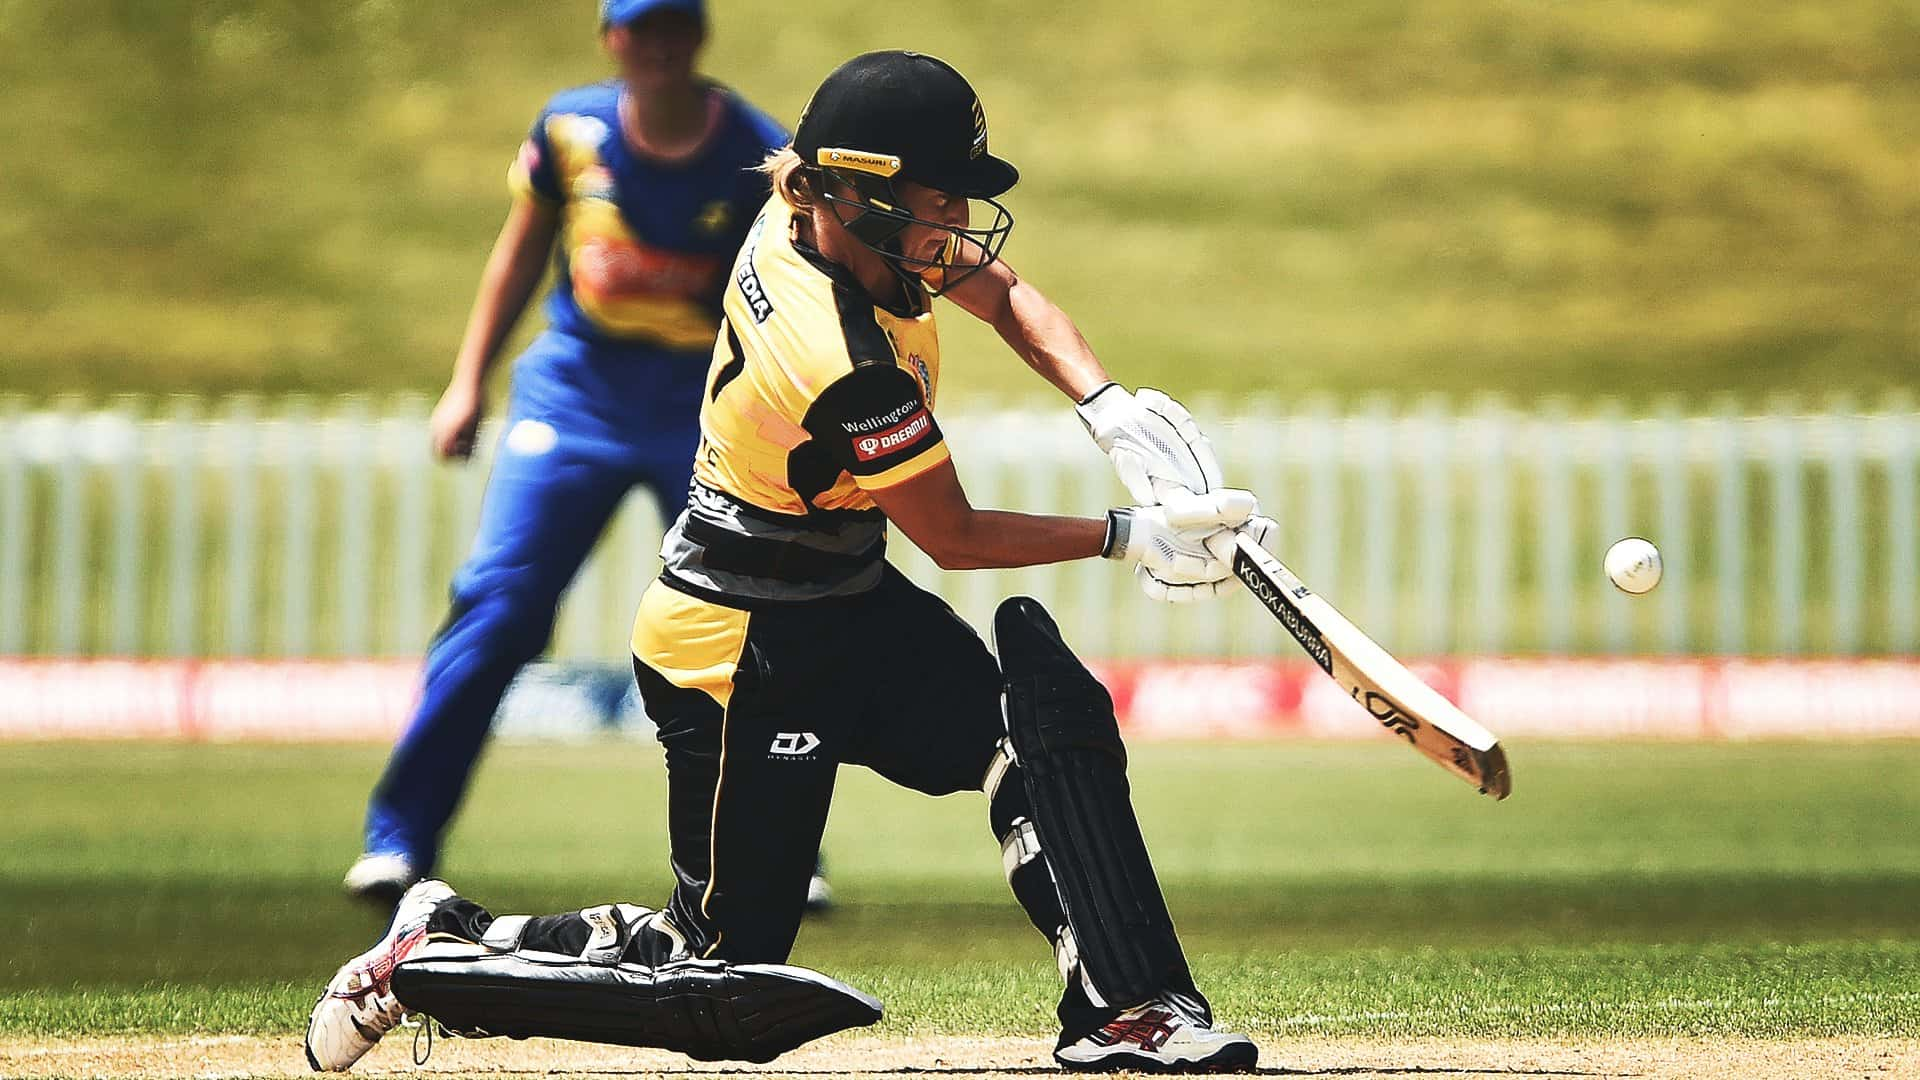 Sophie Devine Records Fastest Century in Women's T20 Cricket, Hits 36-Ball Hundred in New Zealand